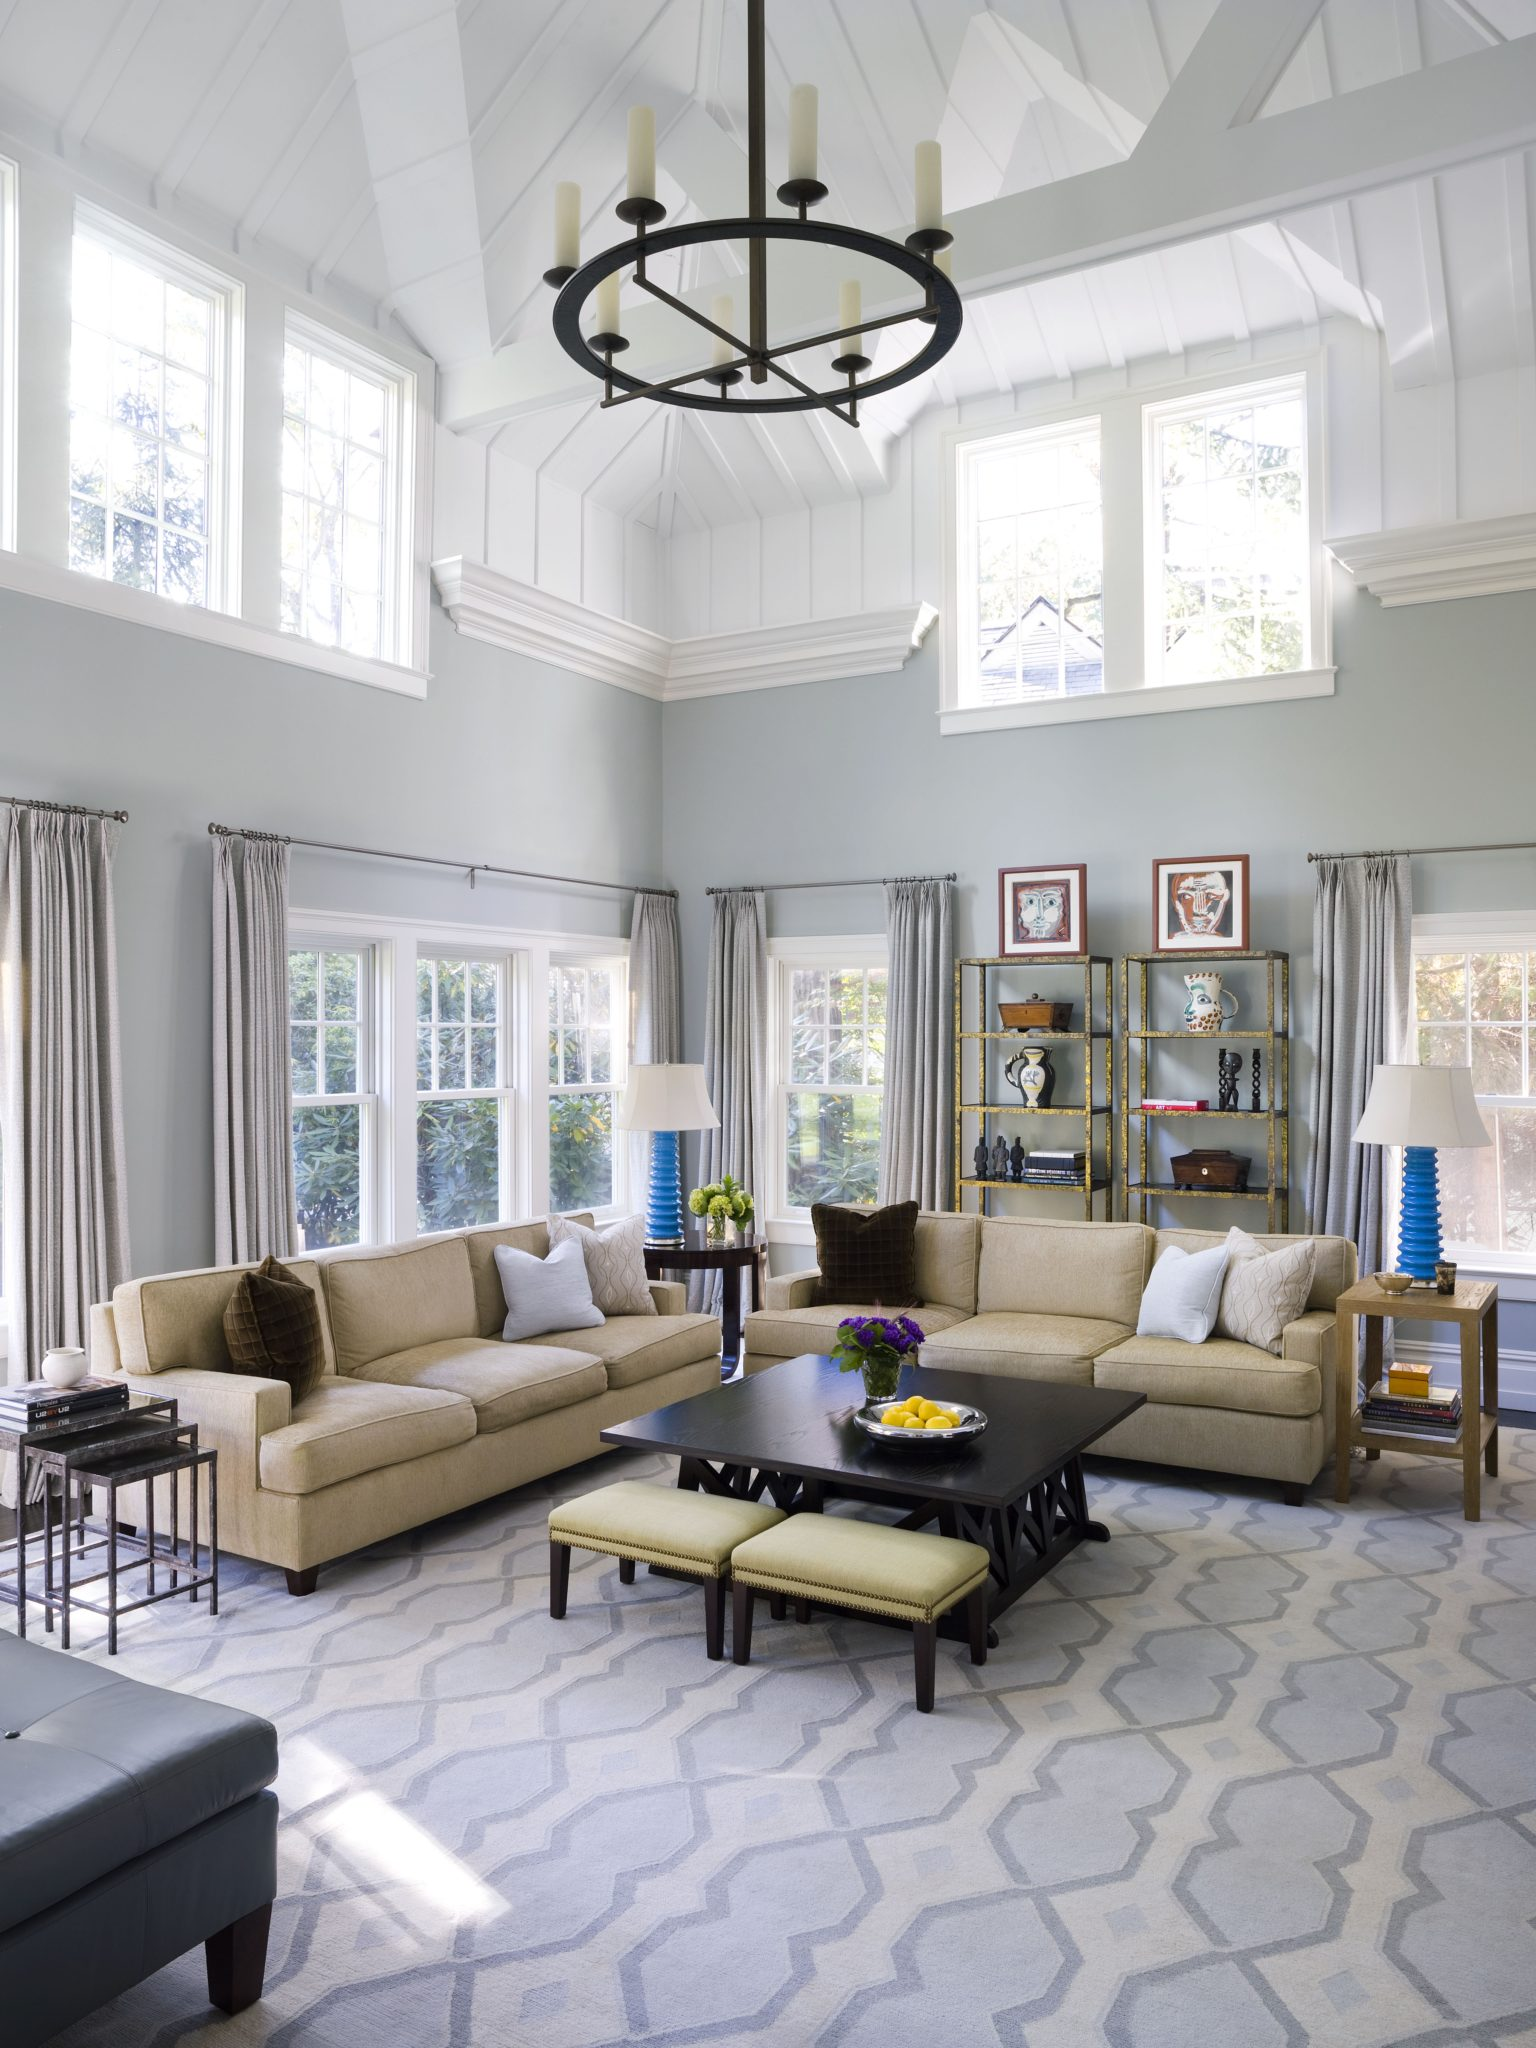 Double Height Family Room, Exposes Truss,Clerestory Windows,Board&Batten Ceiling by Alisberg Parker Architects